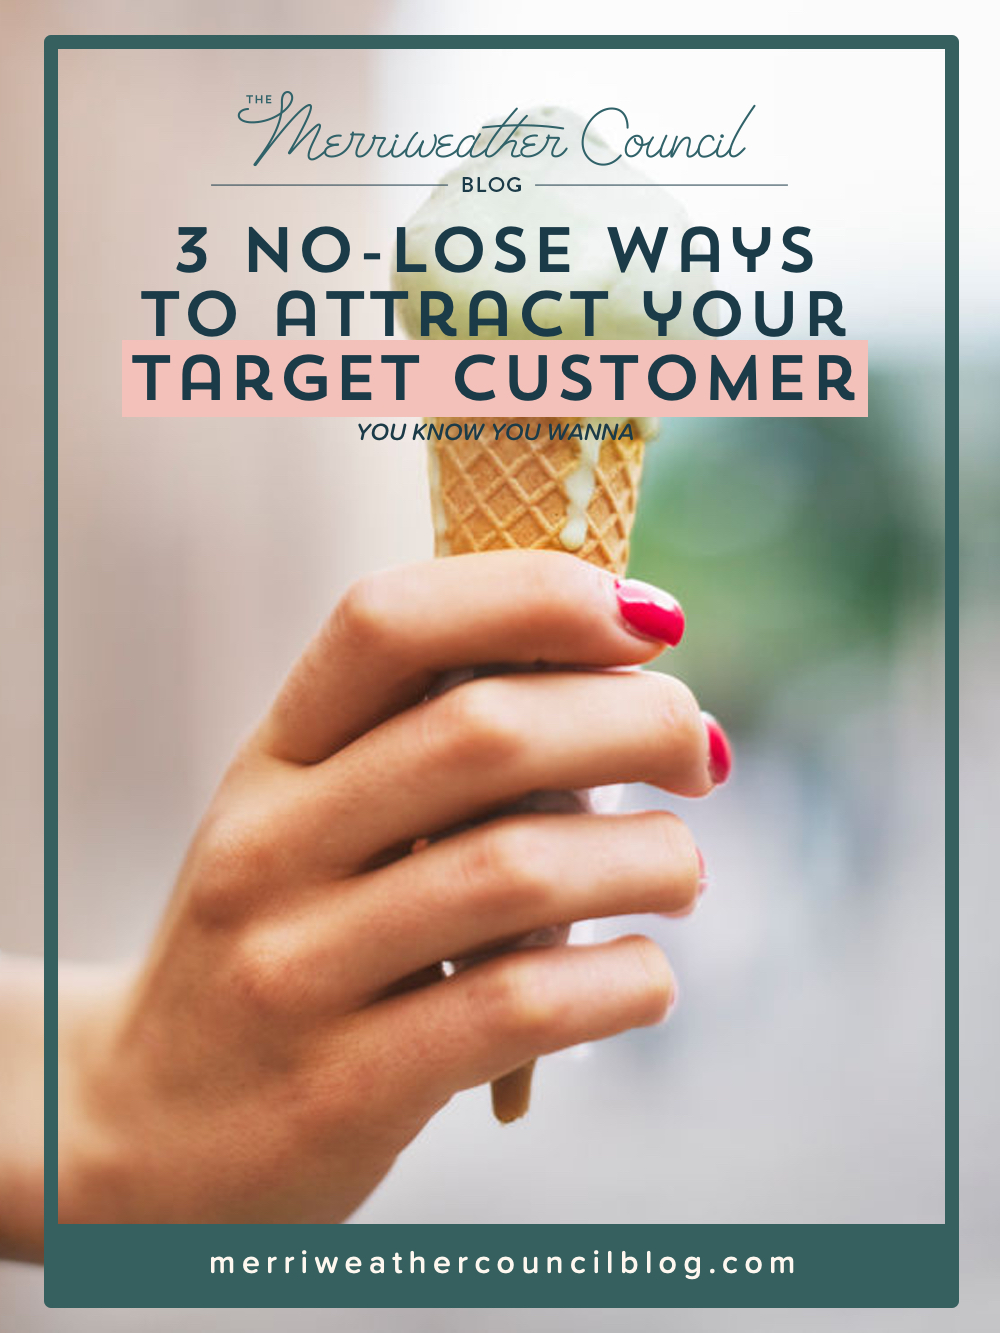 3 No-Lose Ways to Attract Your Target Customer | The Merriweather Council Blog